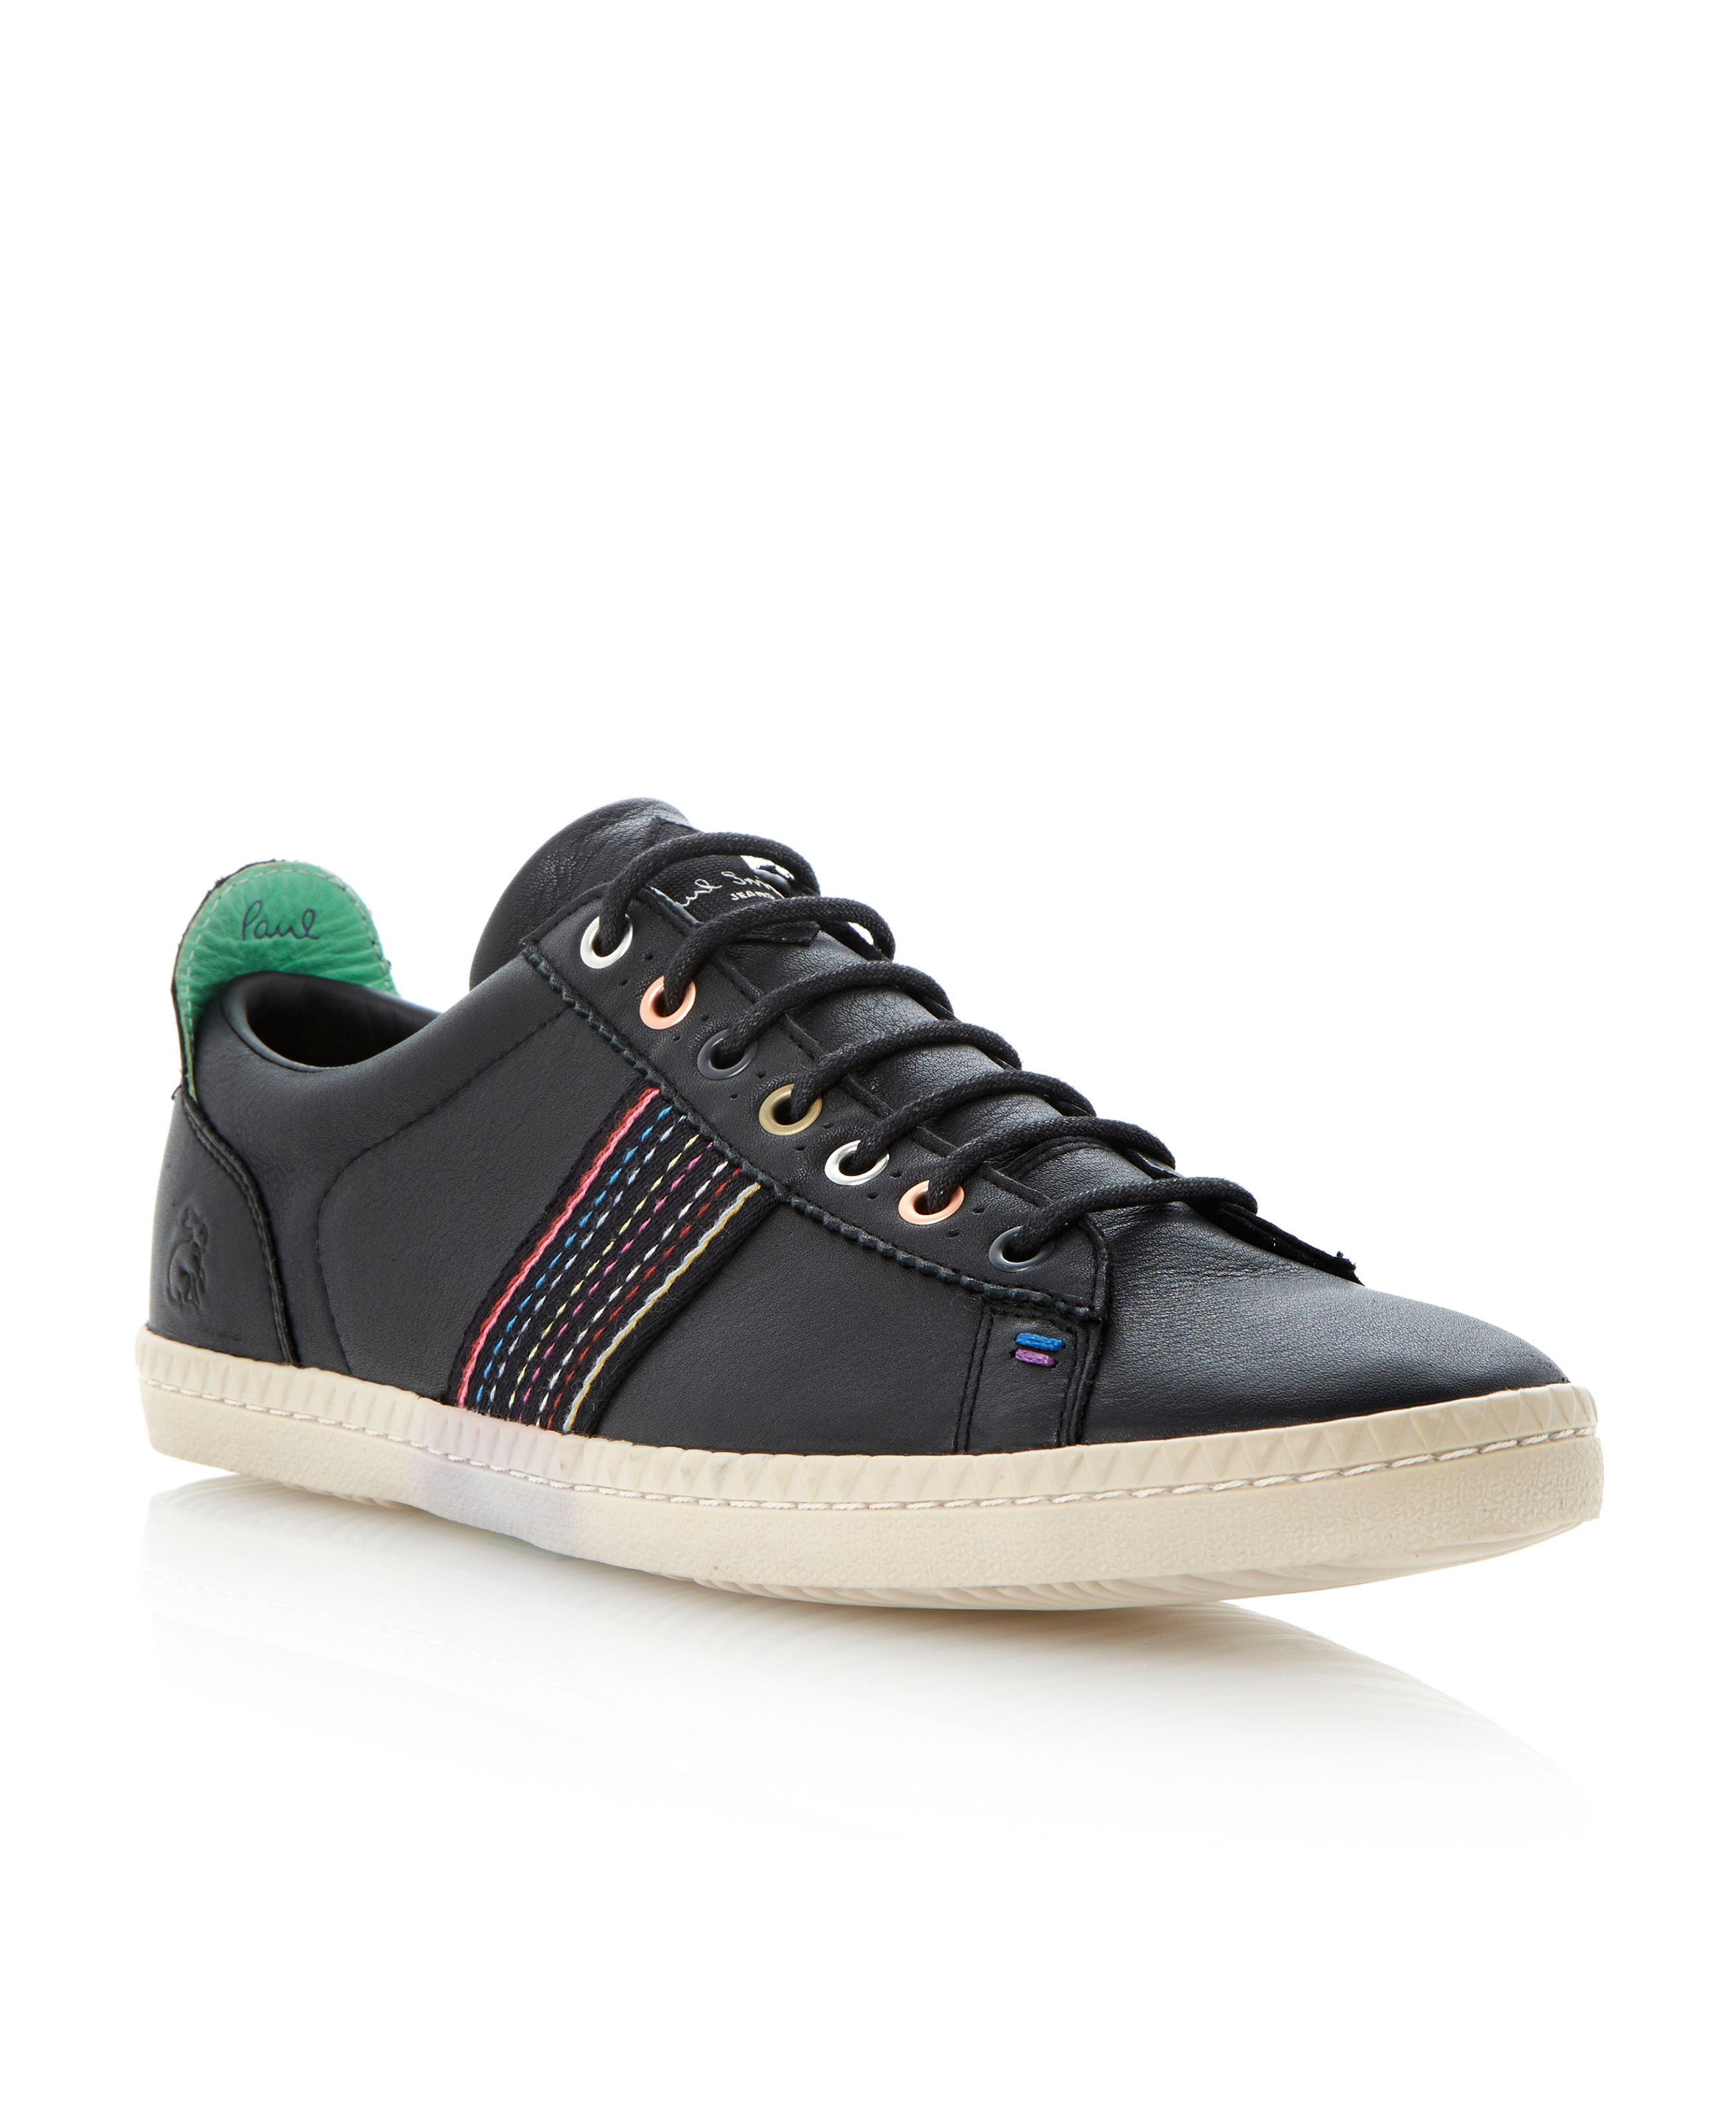 Osmo lace up trainers